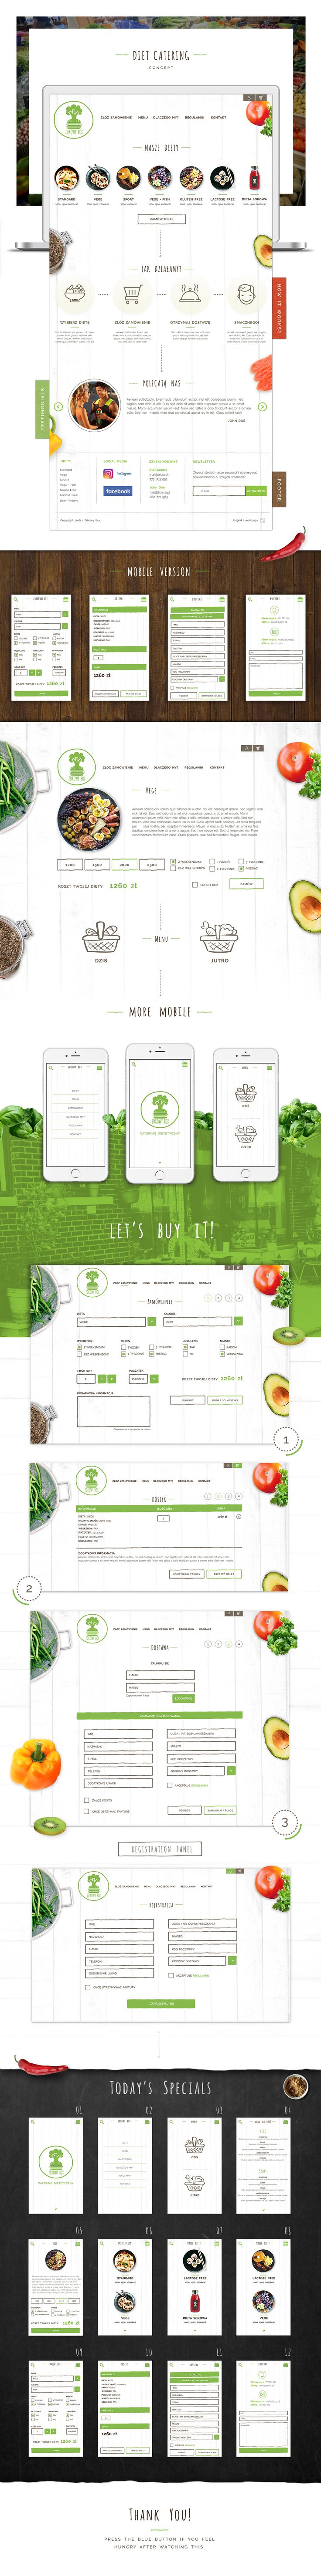 Web design inspiration UI/UX user experience fashion concept  Zdrowy Box- Diet Catering Website Responsive Concept on Behance